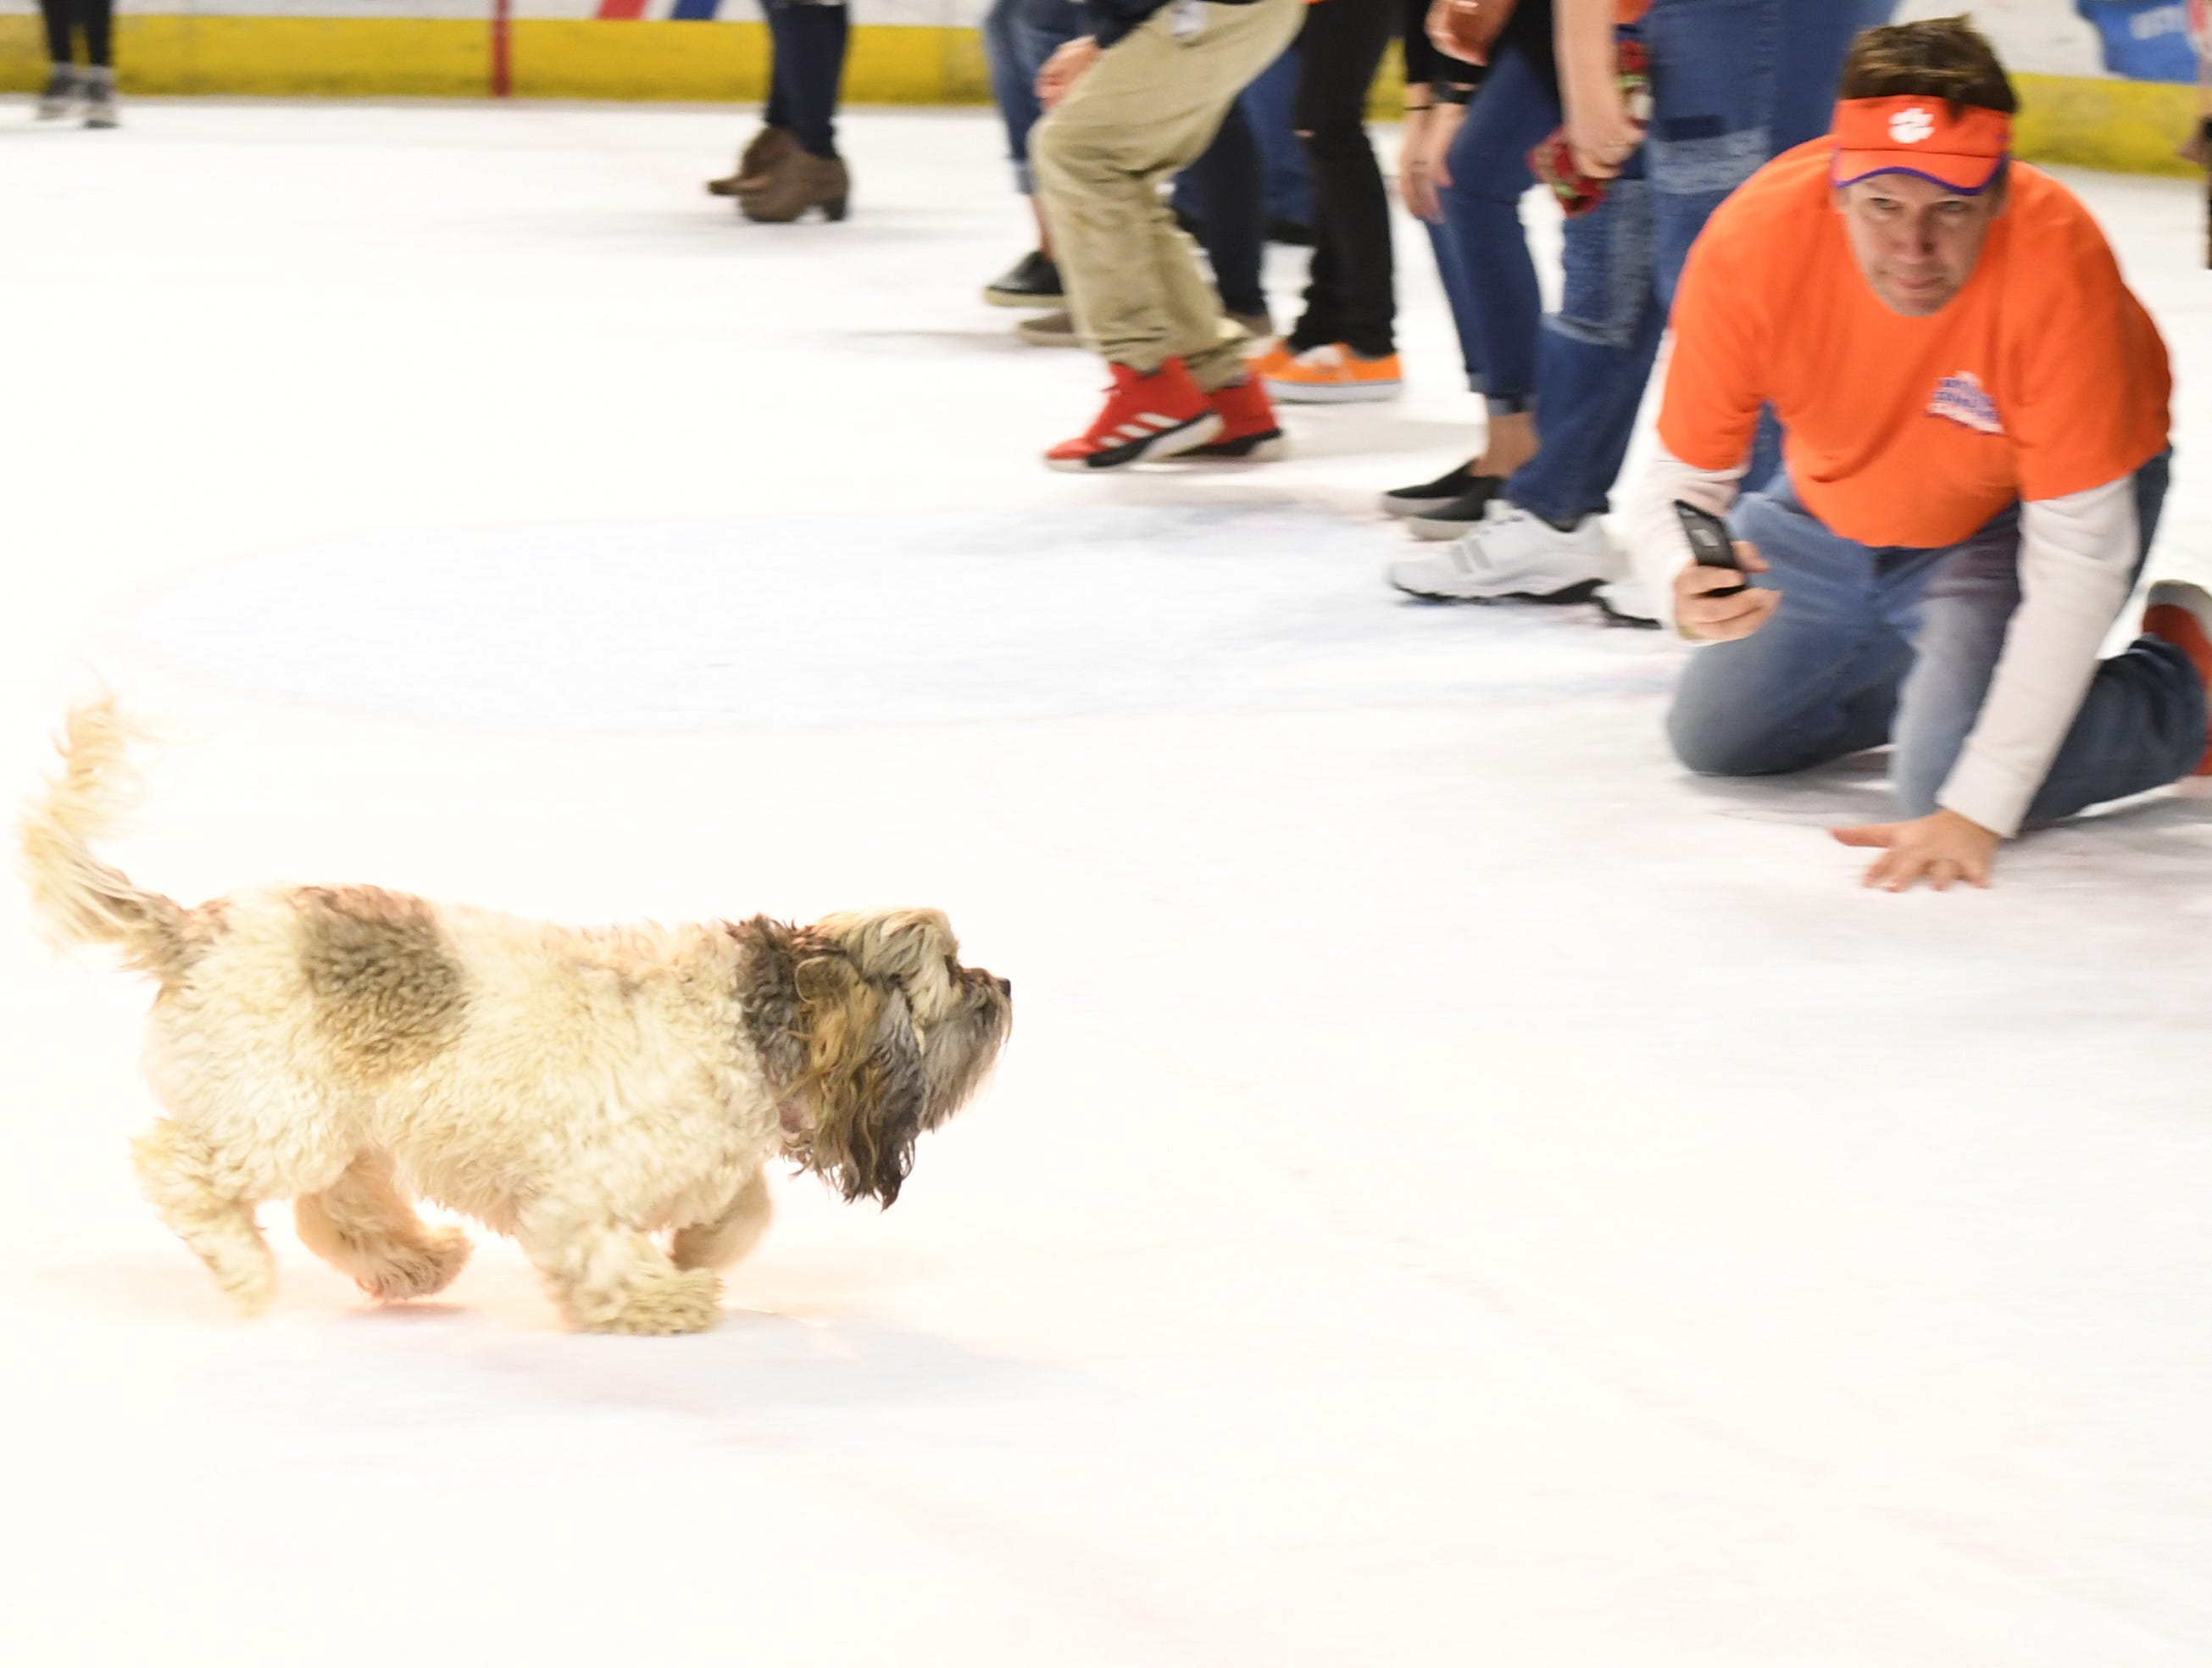 Bella makes it to the finish line winning the dog race during intermission of the Greenville Swamp Rabbits game against the Florida Everblades Saturday, Feb. 2, 2019. Saturday was Pucks N' Paws night at Bon Secours Wellness Arena.